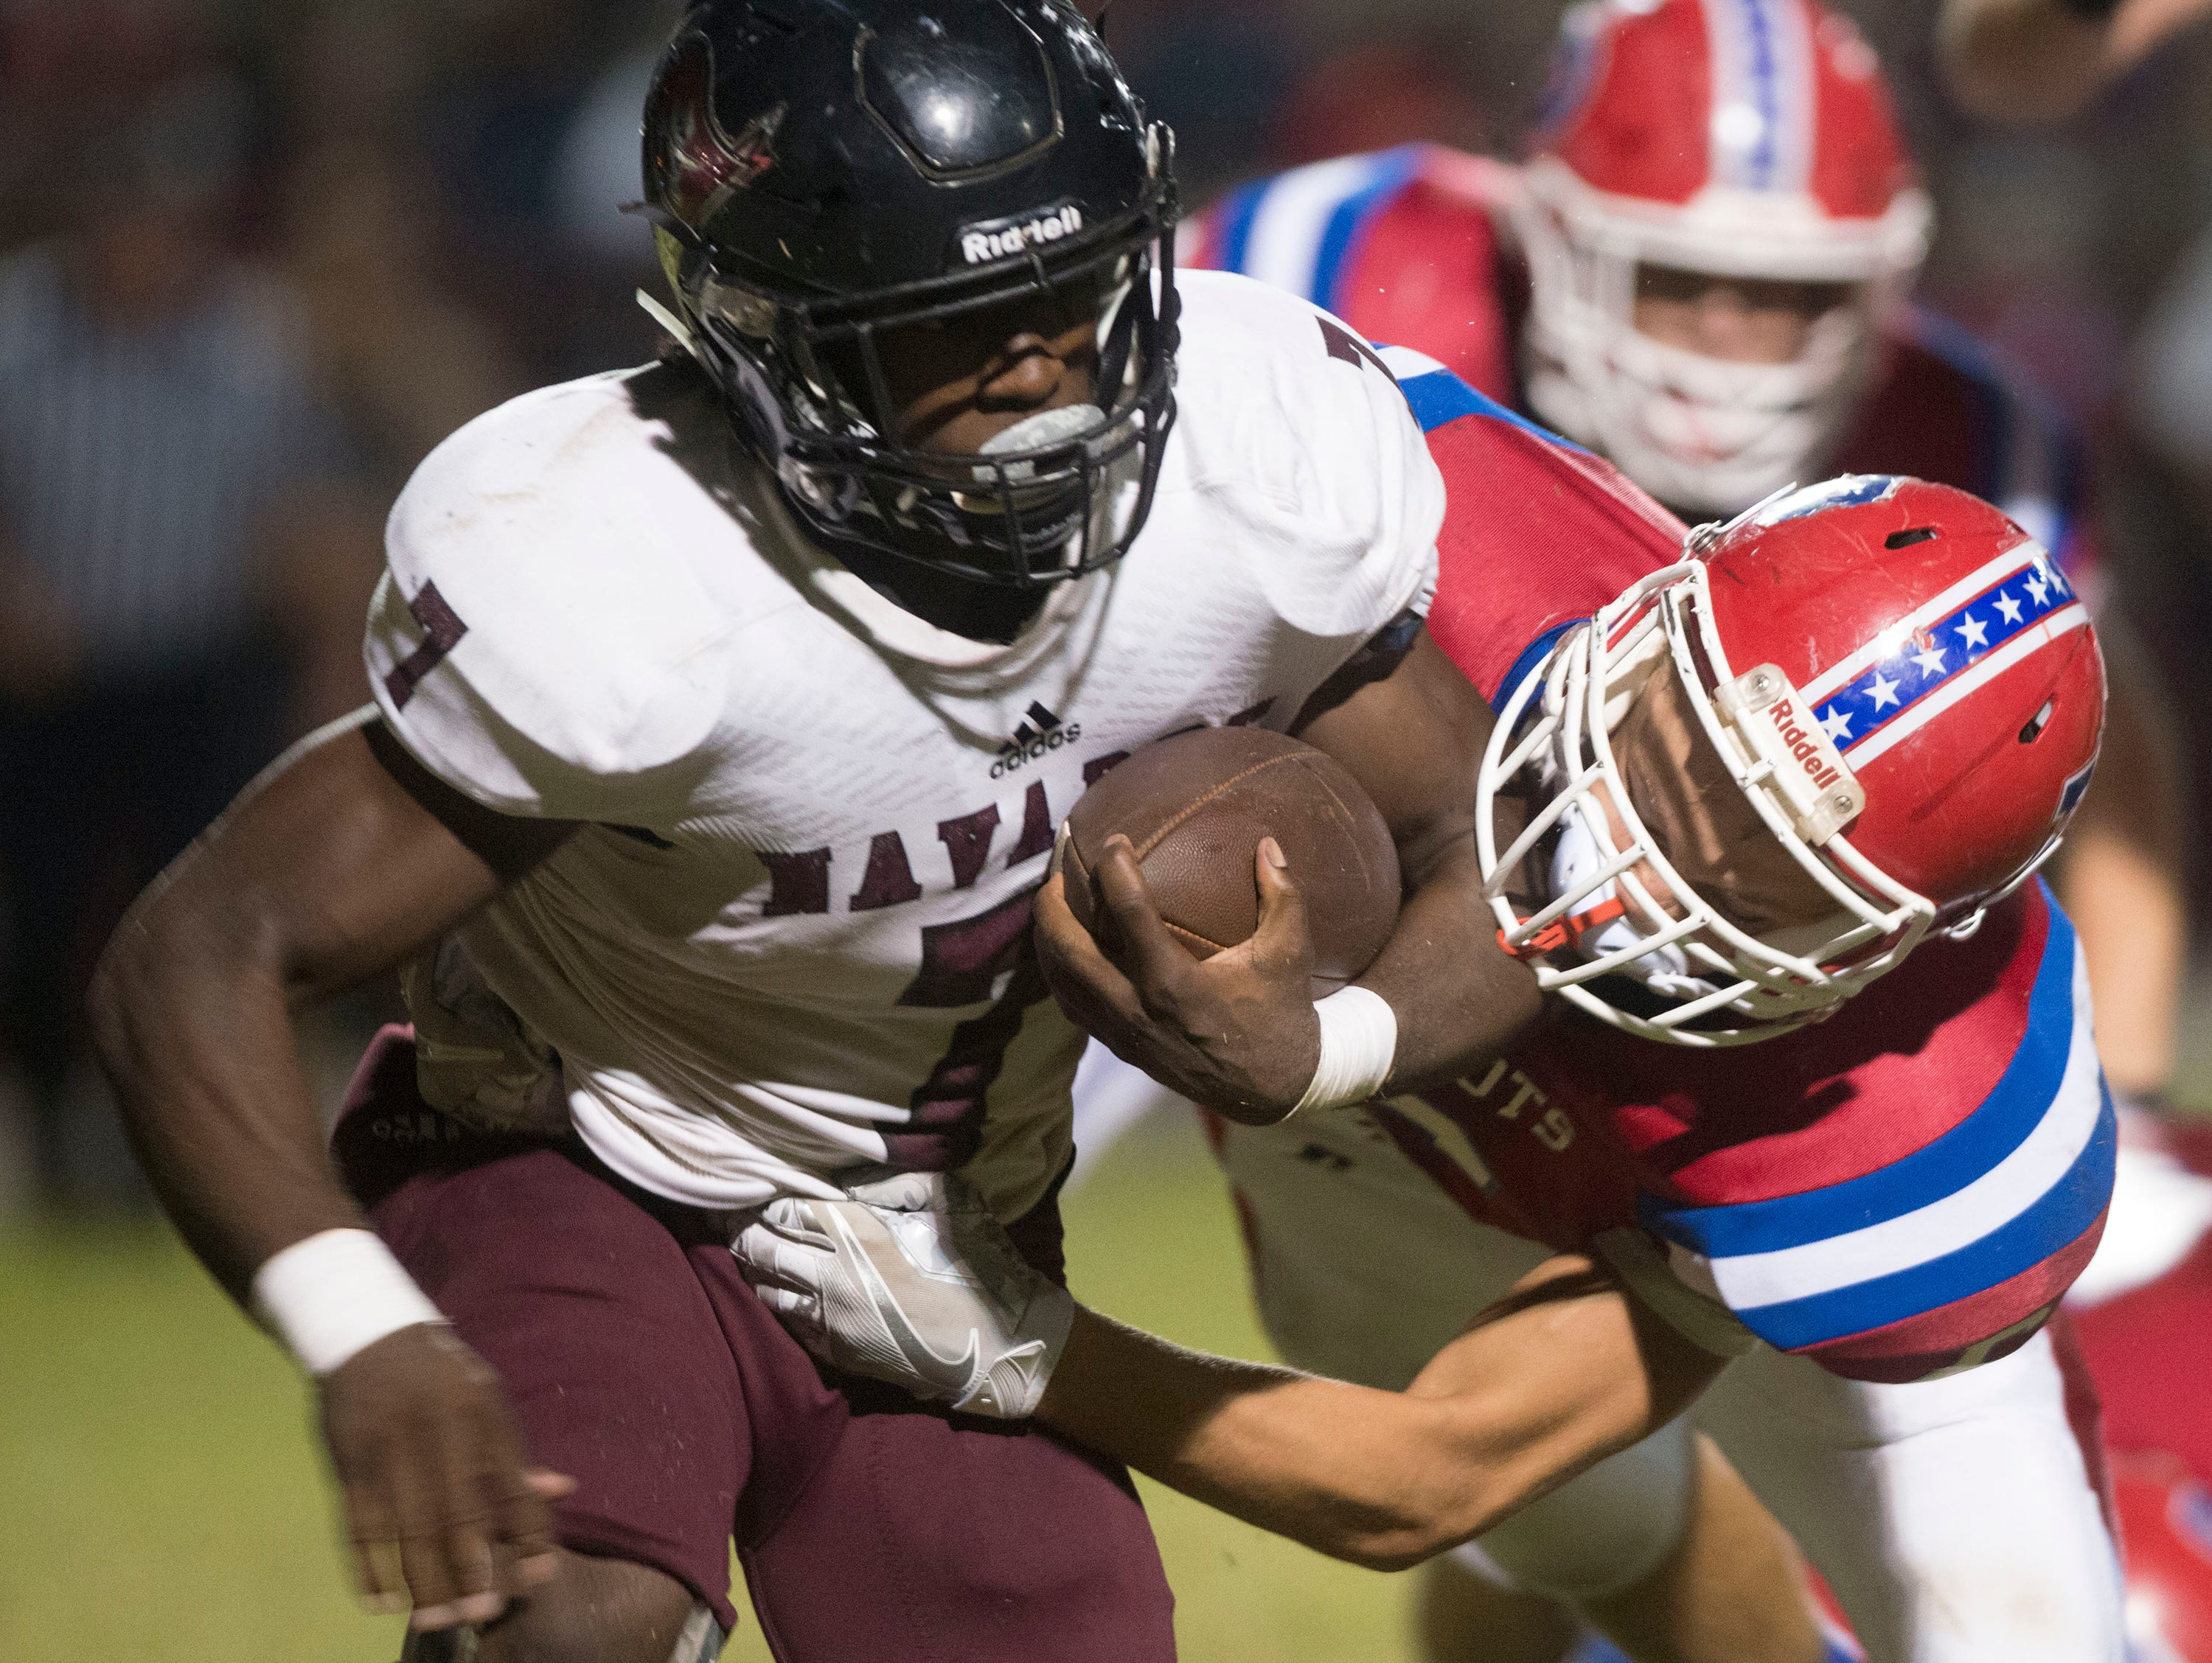 Navarre High School star running back Michael Carter (No. 7) gets wrapped up behind the line of scrimmage by the Pace High School defense during the District 2-6A matchup Friday night.